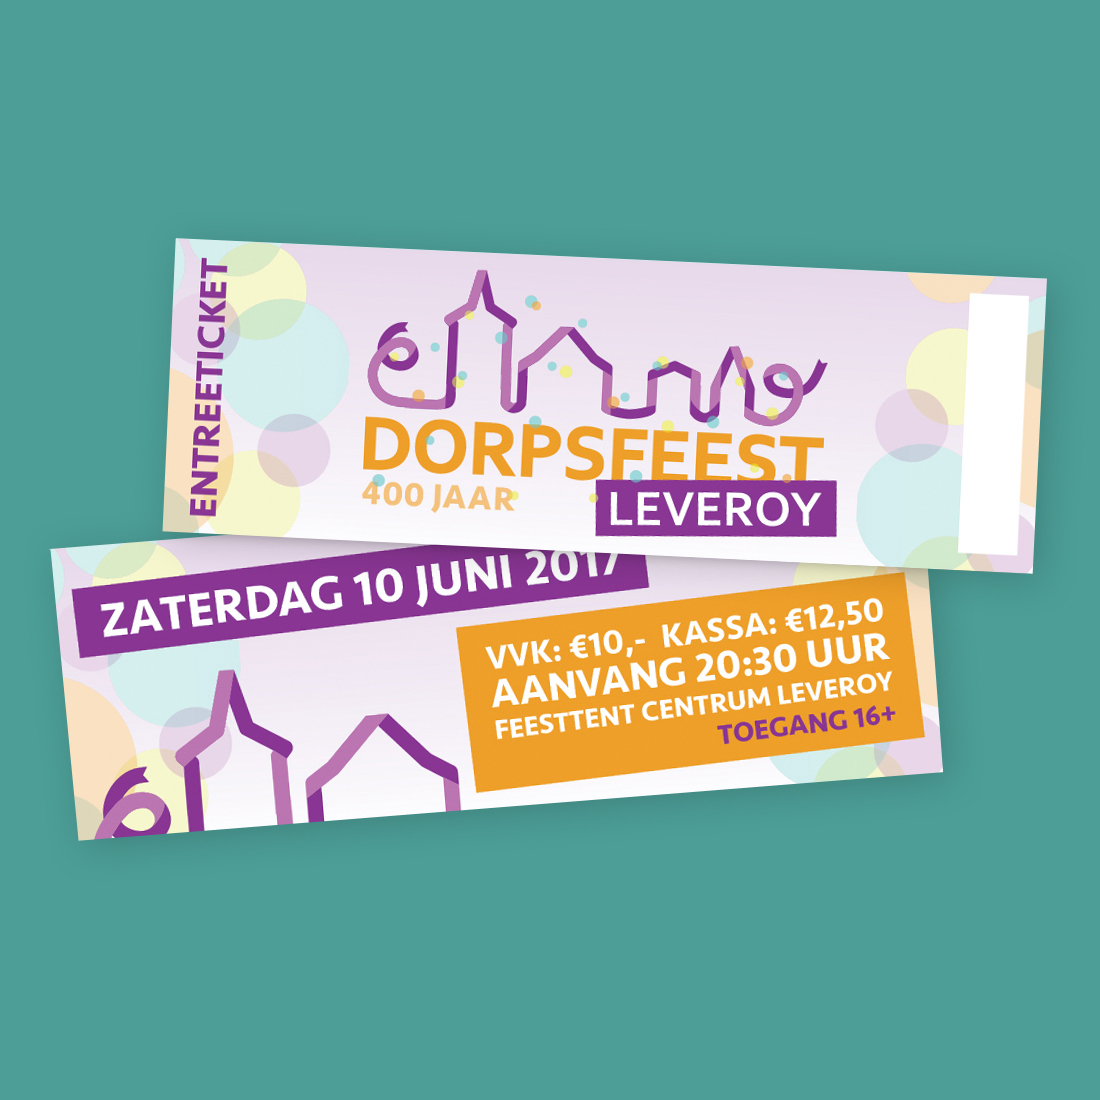 Ticket Dorpsfeest Leveroy